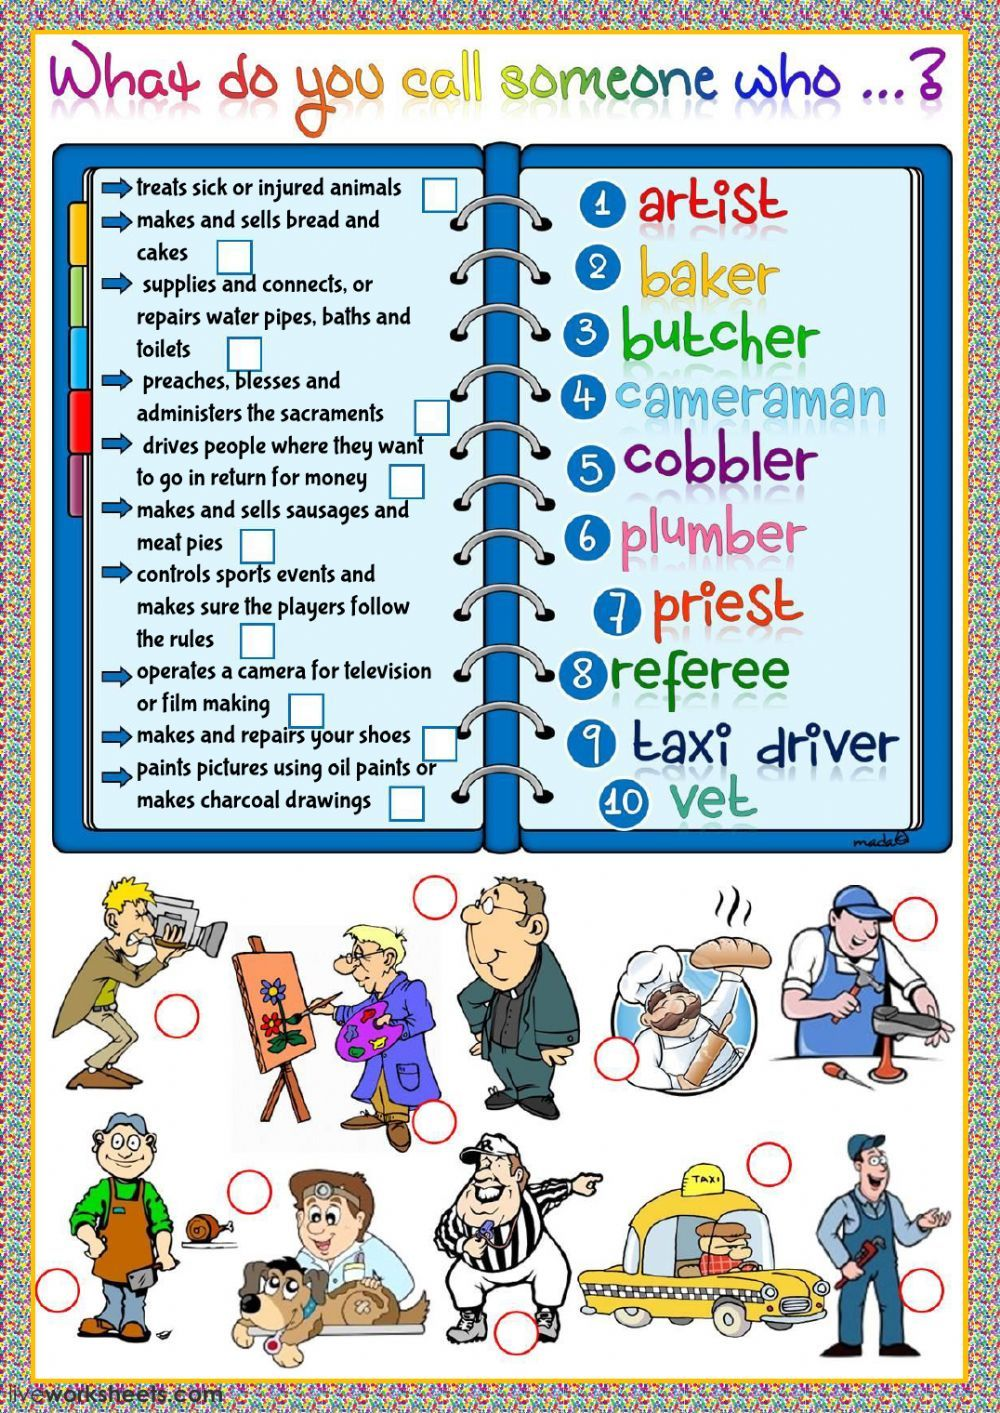 Jobs And Occupations Interactive And Downloadable Worksheet You Can Do The Exercises Online Or Down English As A Second Language Teacher Helper Marketing Jobs [ 1413 x 1000 Pixel ]